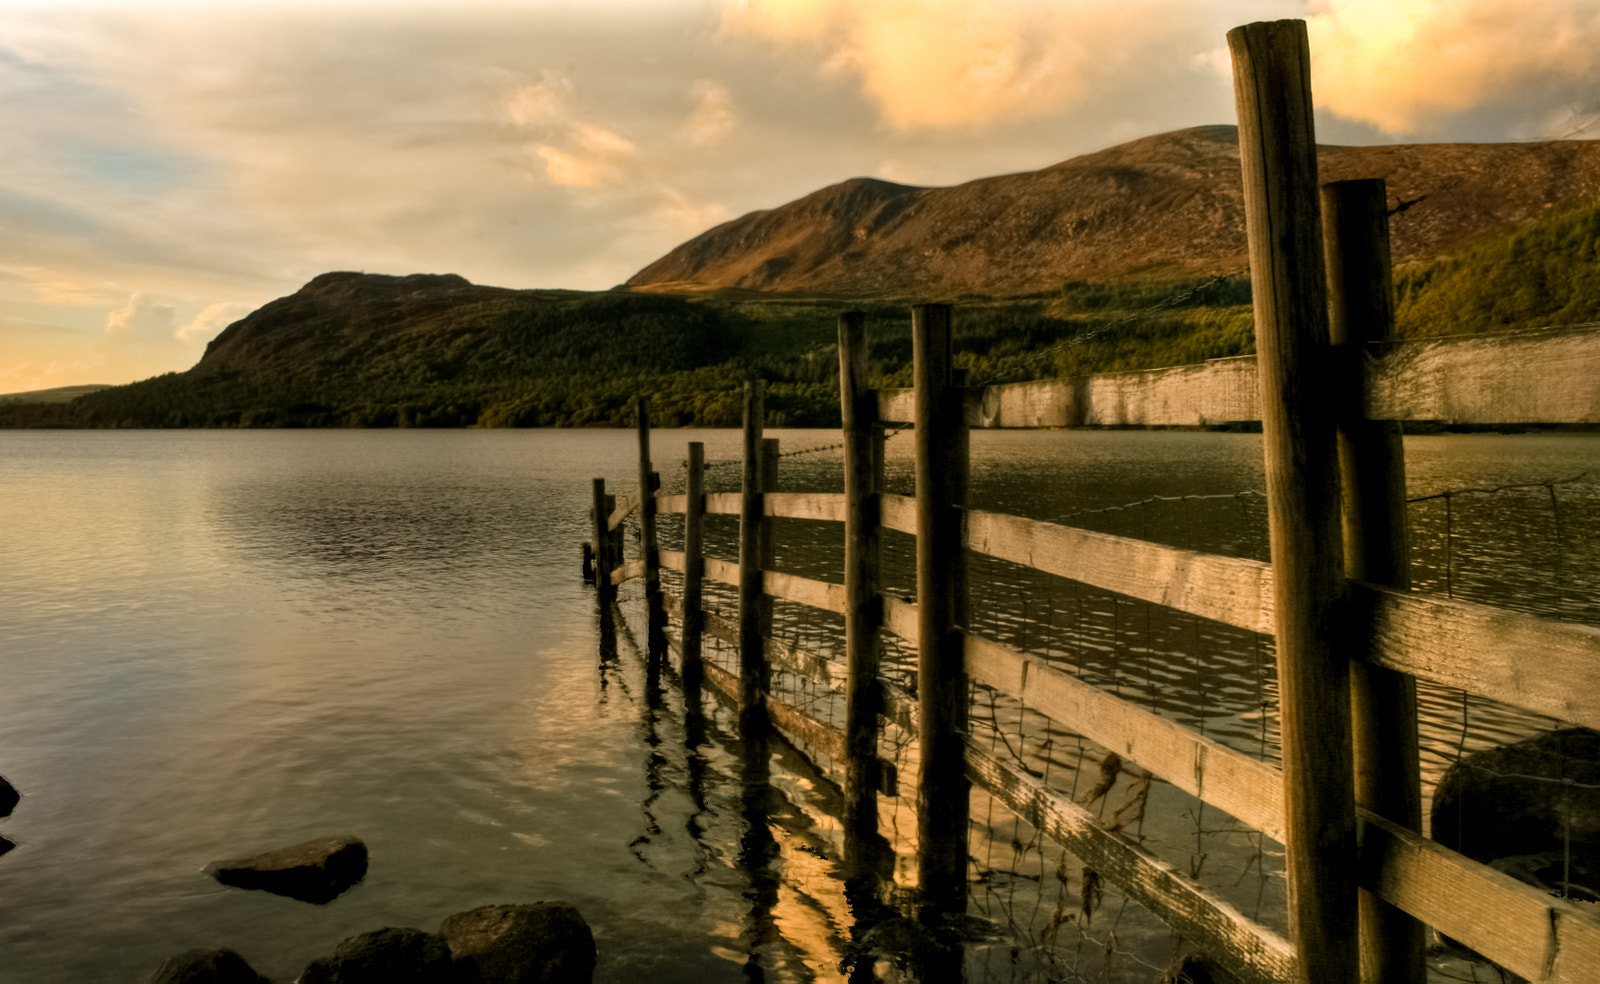 Photograph Fence in Ennerdale Water, Cumbria by Derek Σωκράτης Finch on 500px